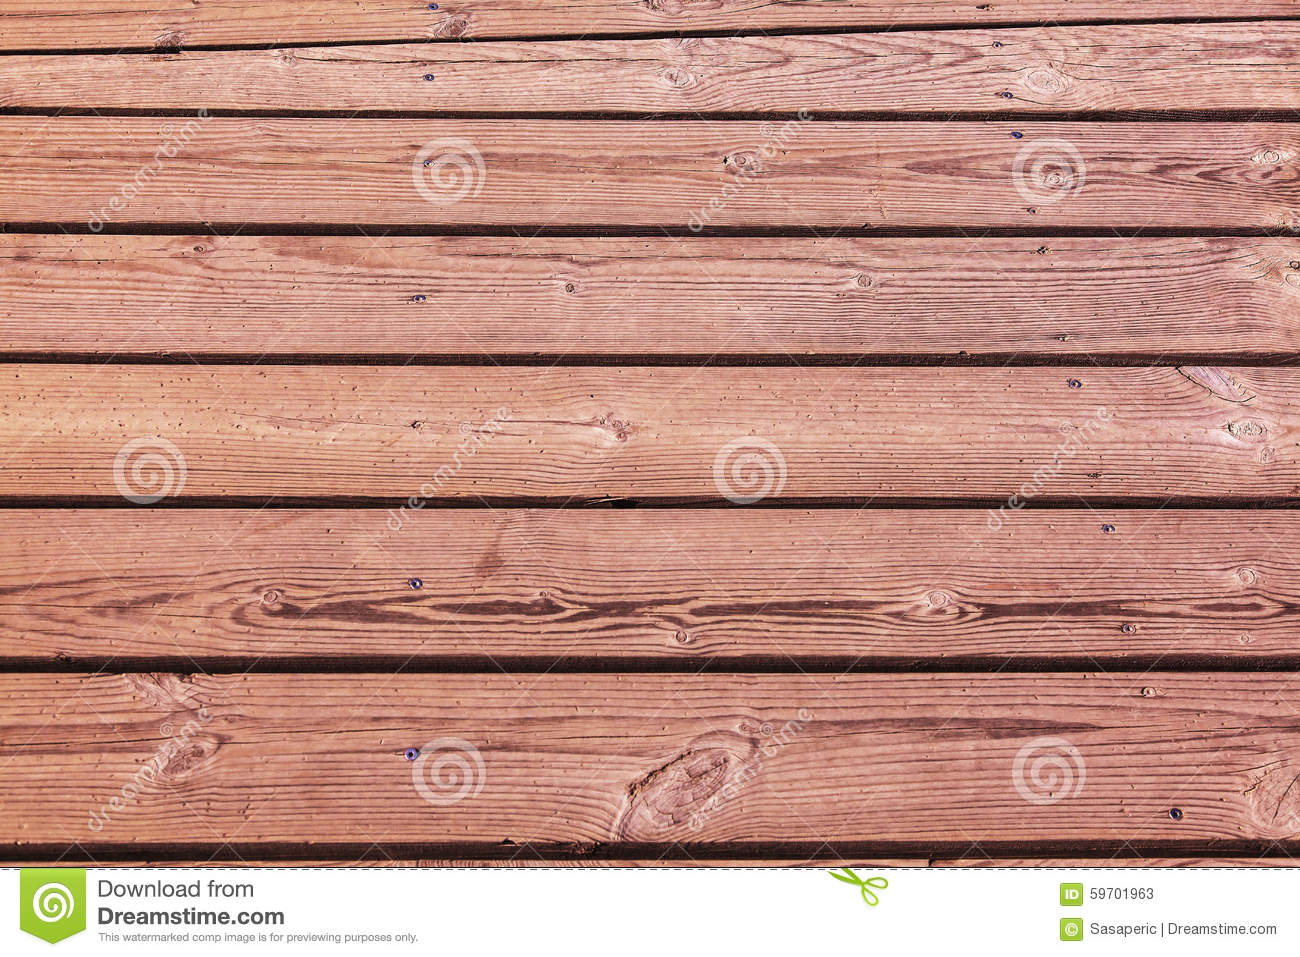 Close Up Of Wooden Table Texture Stock Image - Image of close, decorative: 59701963